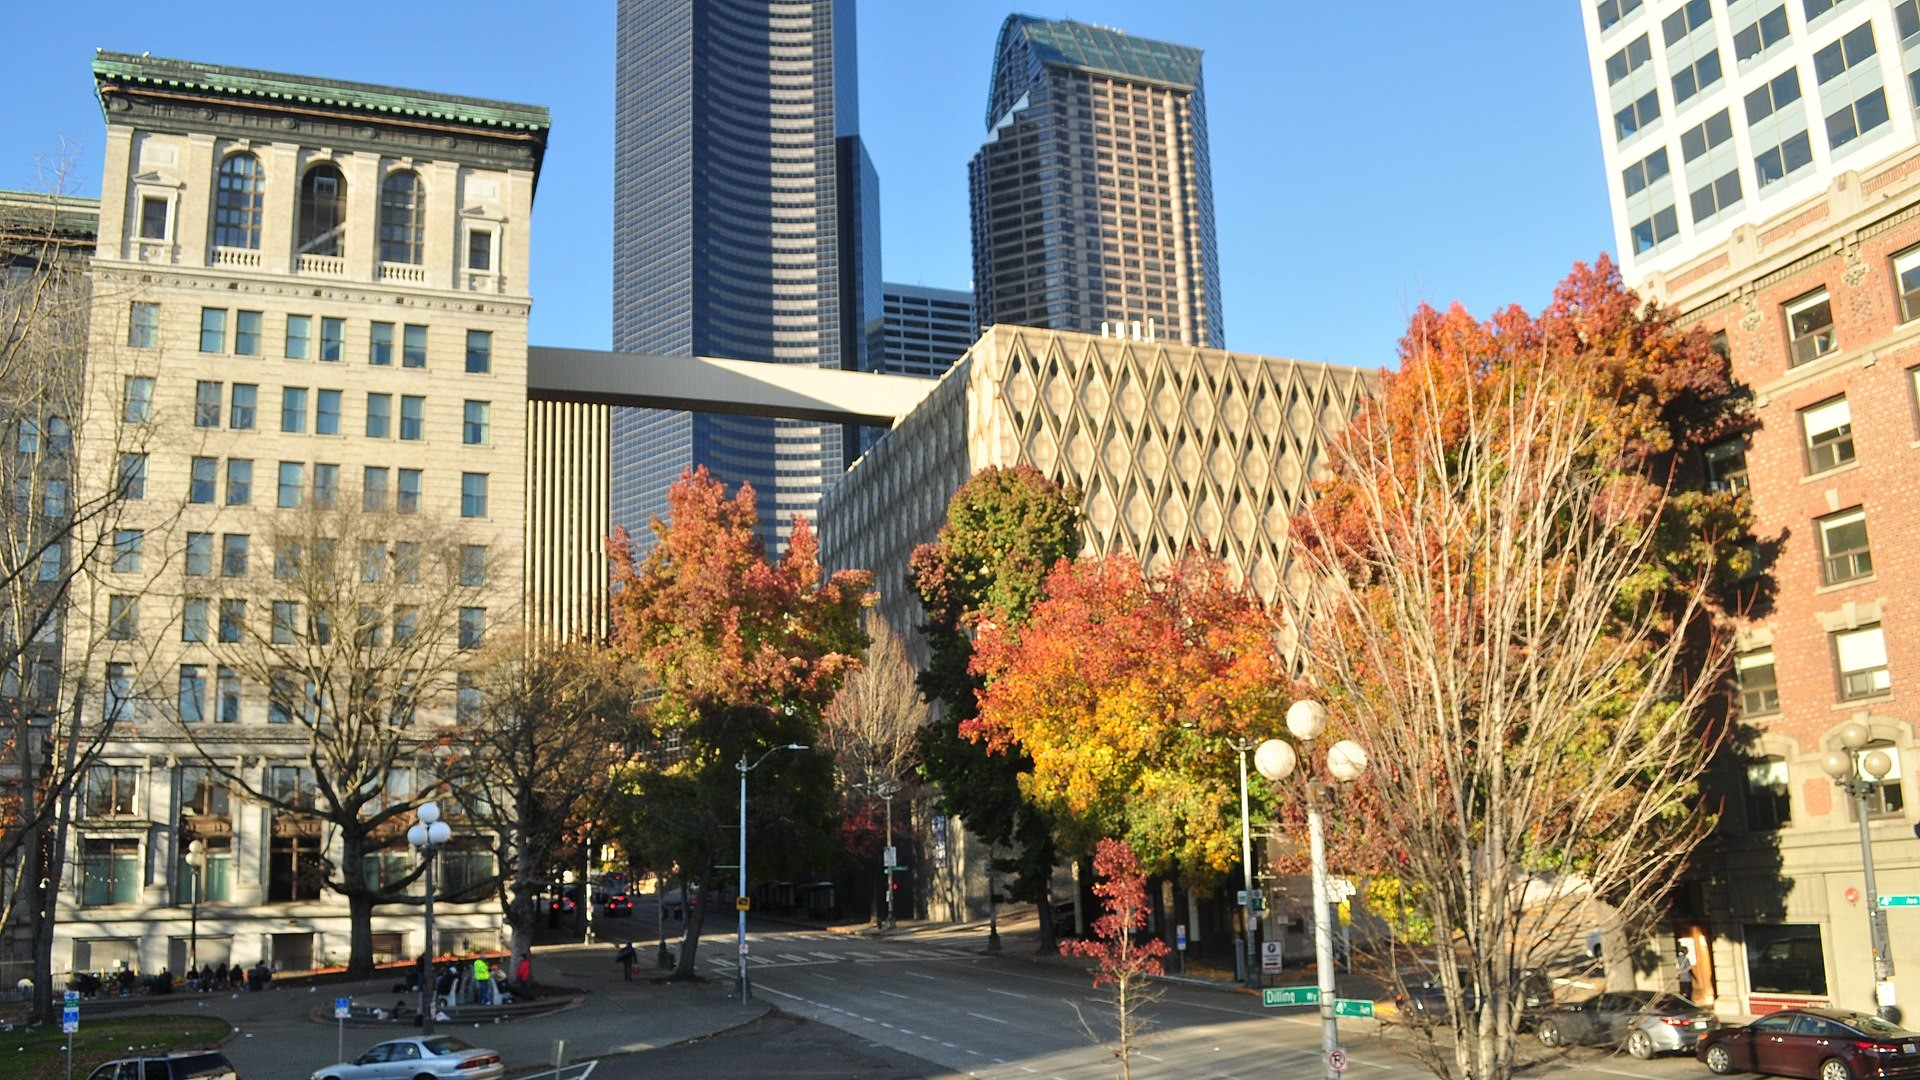 This image shows office buildings in downtown Seattle.